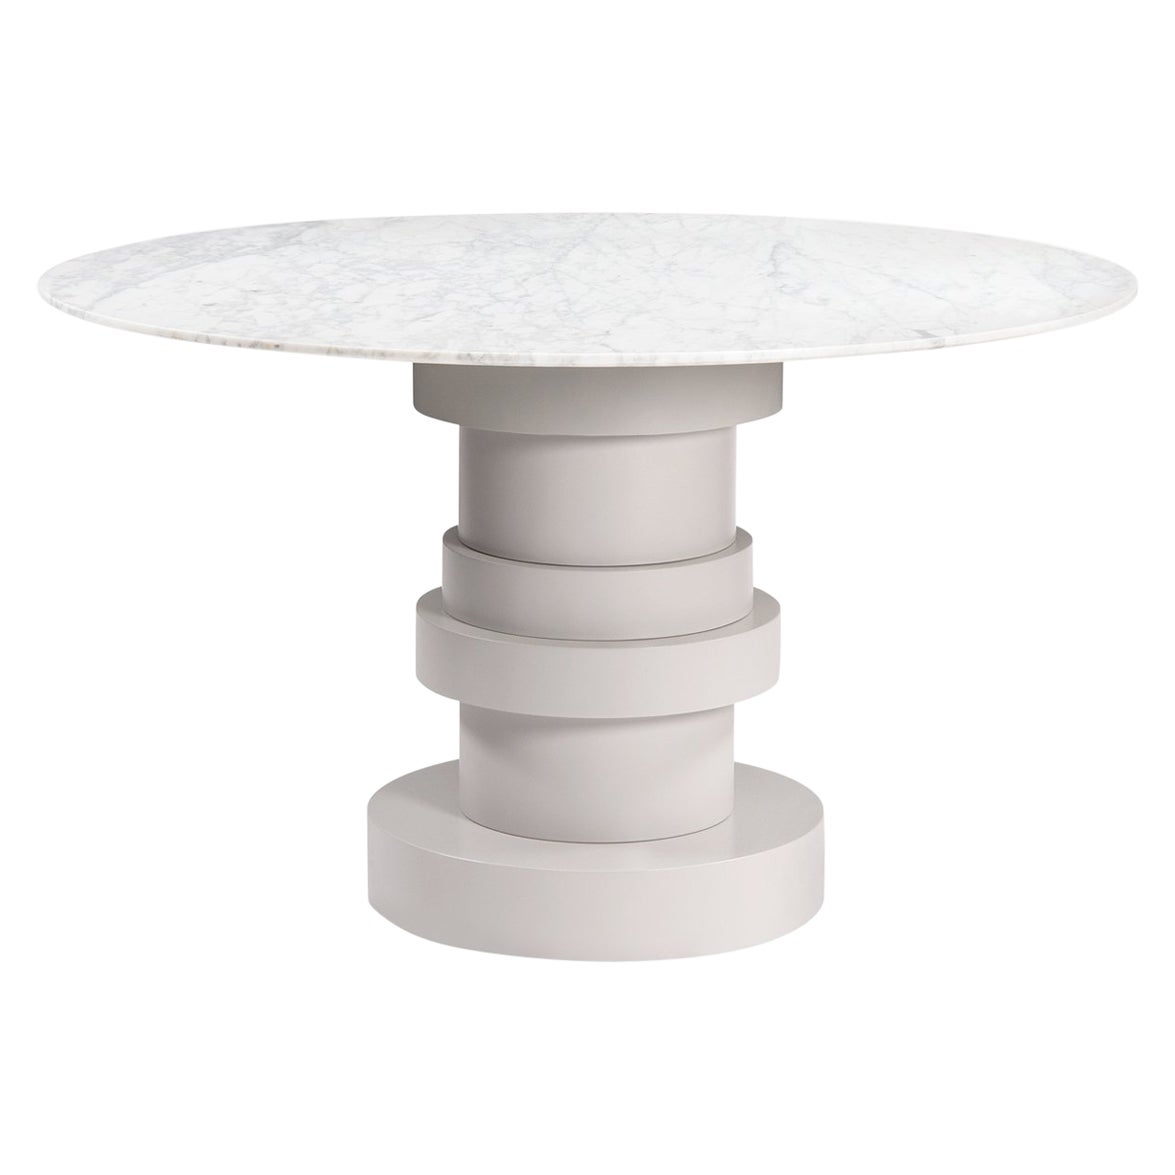 Round White Carrara Top Dining Table with Stacked Geometric Pedestal Base